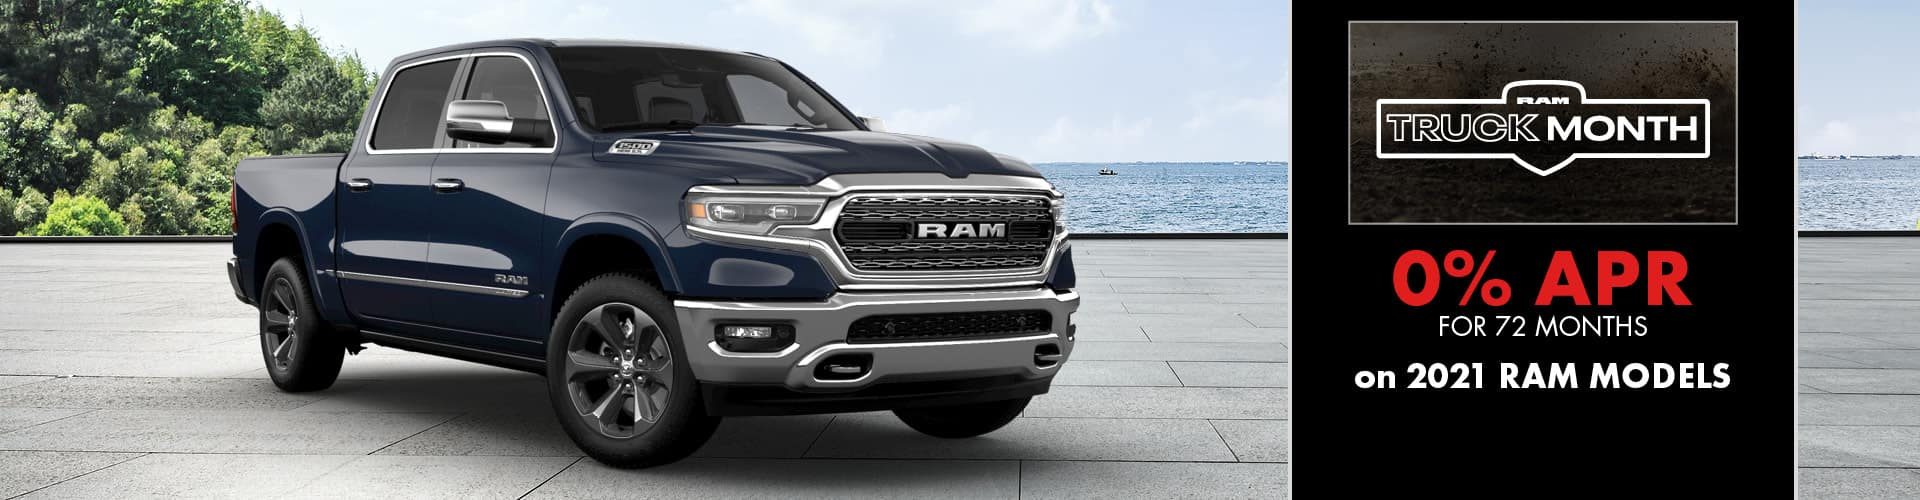 0% for 72 months on 2021 RAM models